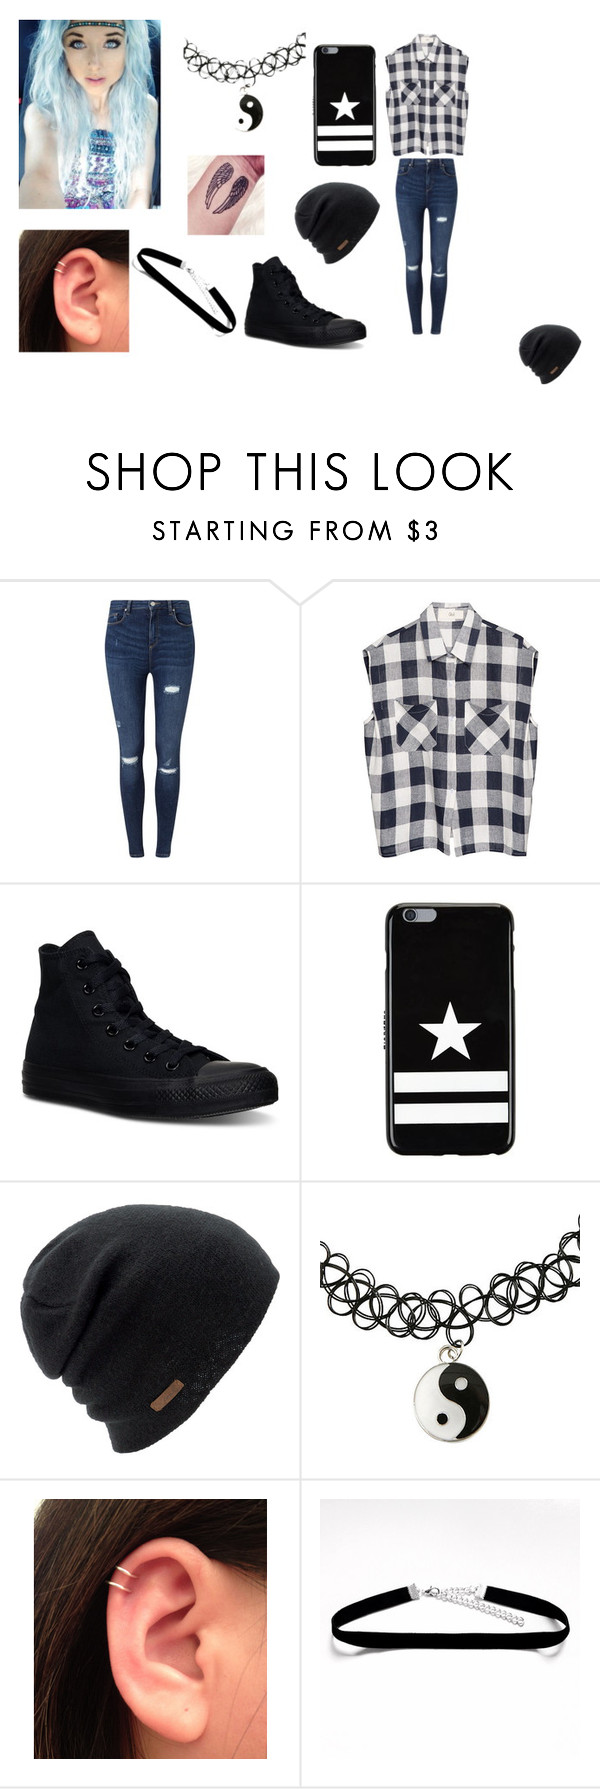 """wattpad"" by kennajayce on Polyvore featuring Miss Selfridge, Converse, Givenchy and Coal"